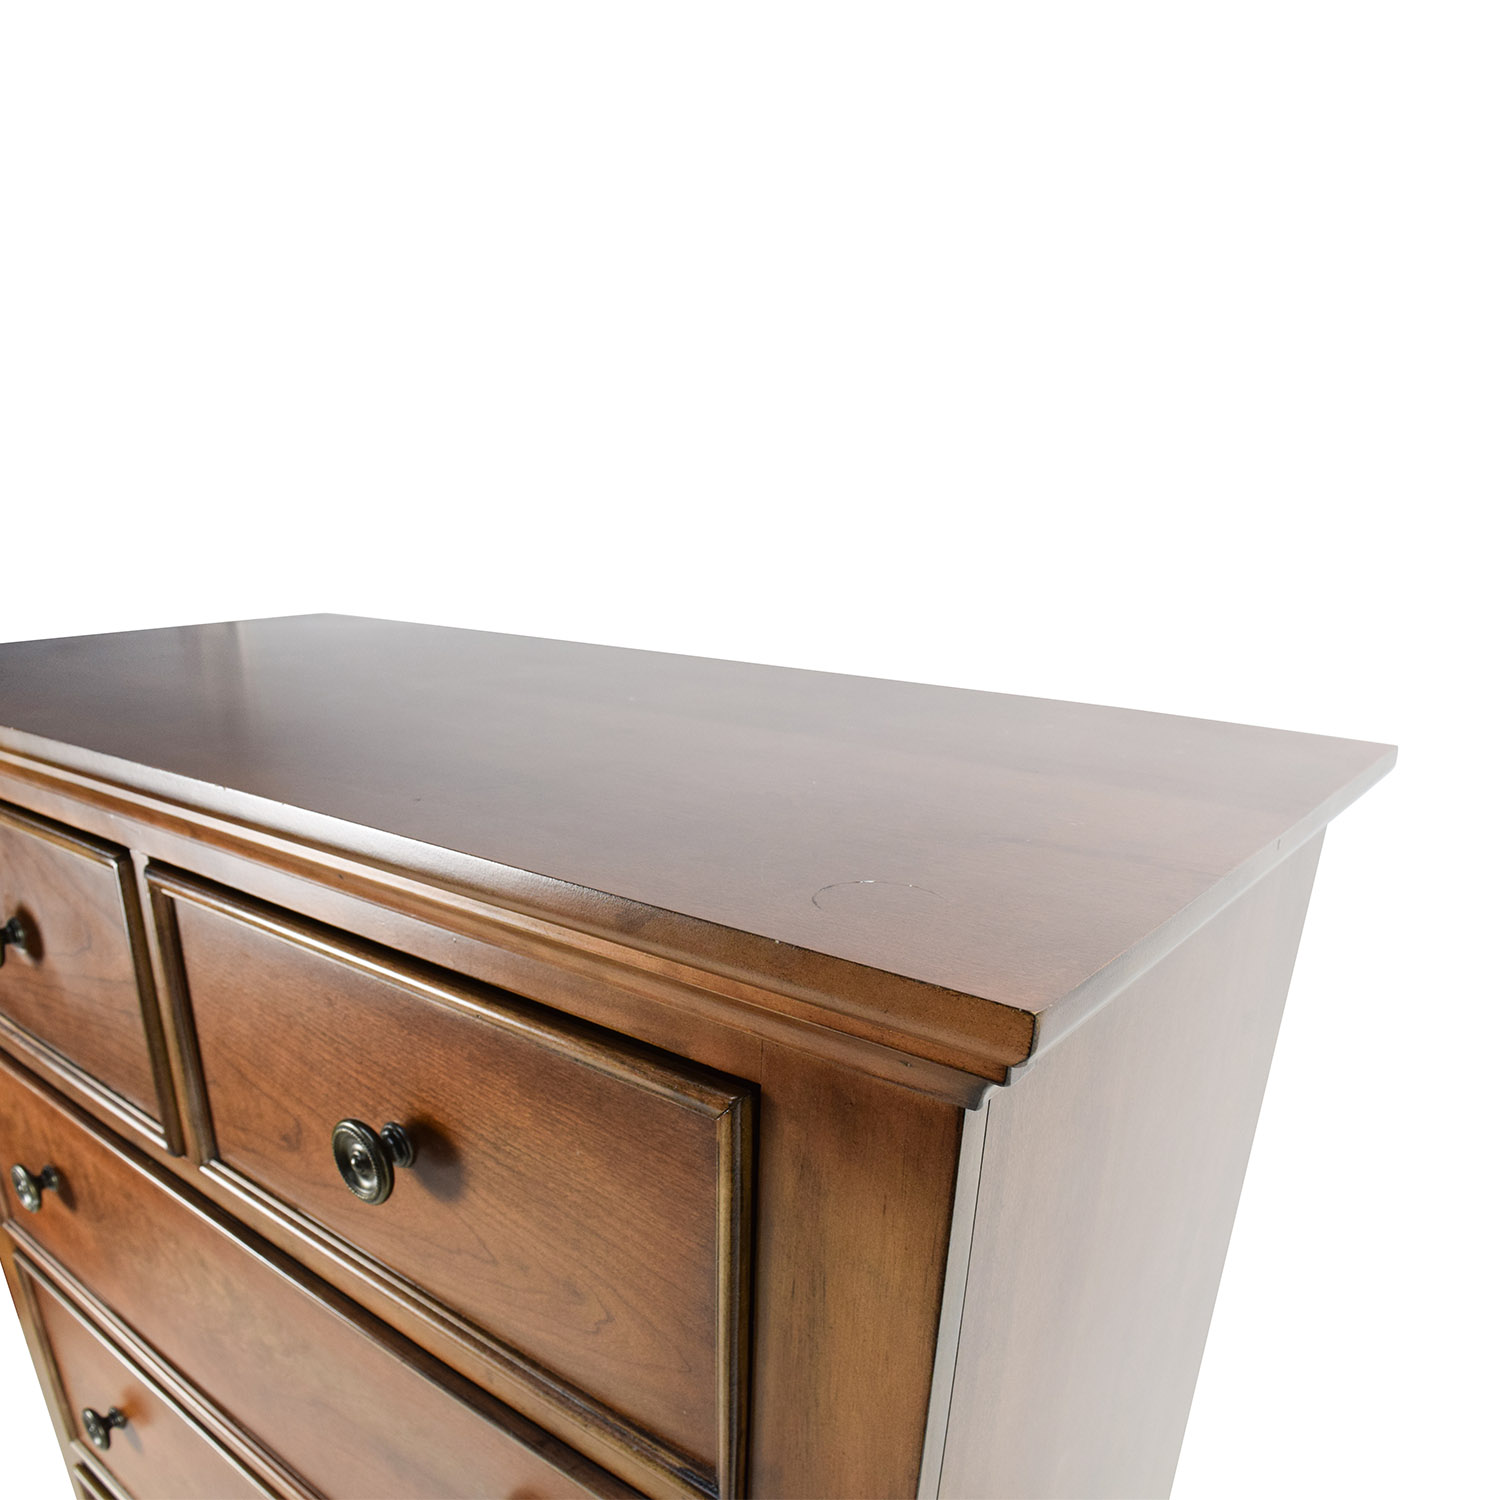 Raymour and Flanigan Raymour & Flanigan Tall Rustic Wood Chest of Drawers